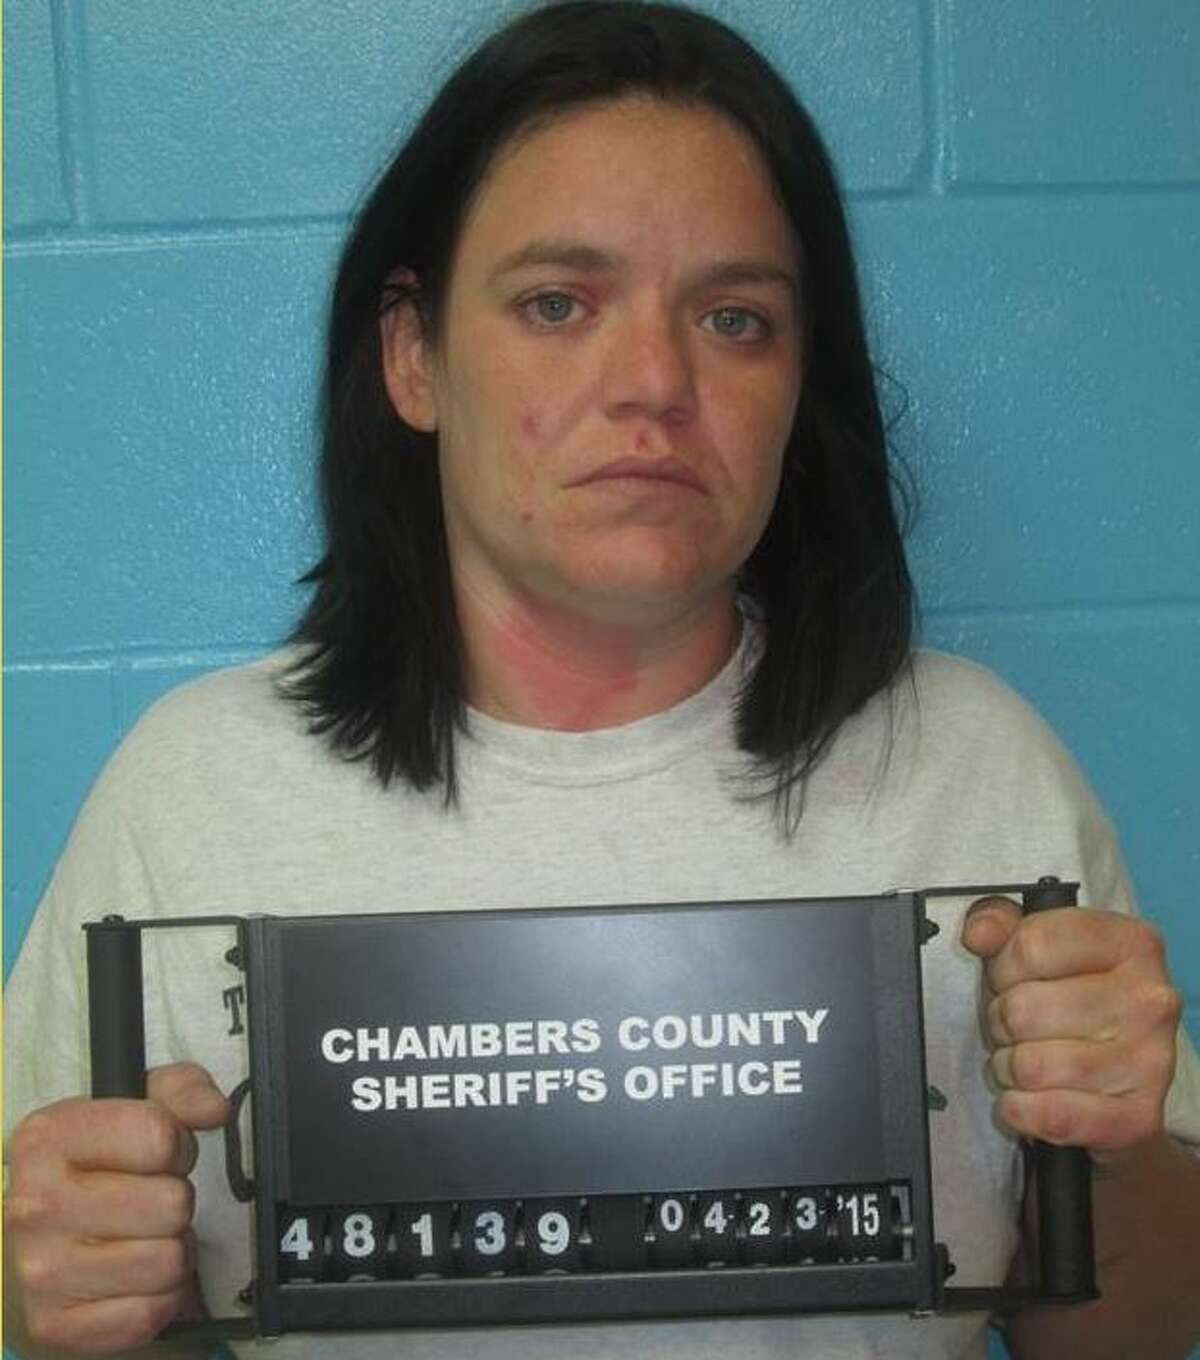 Laura Marie Meyer, 33, of Anahuac, is charged with theft, April 27, 2015.